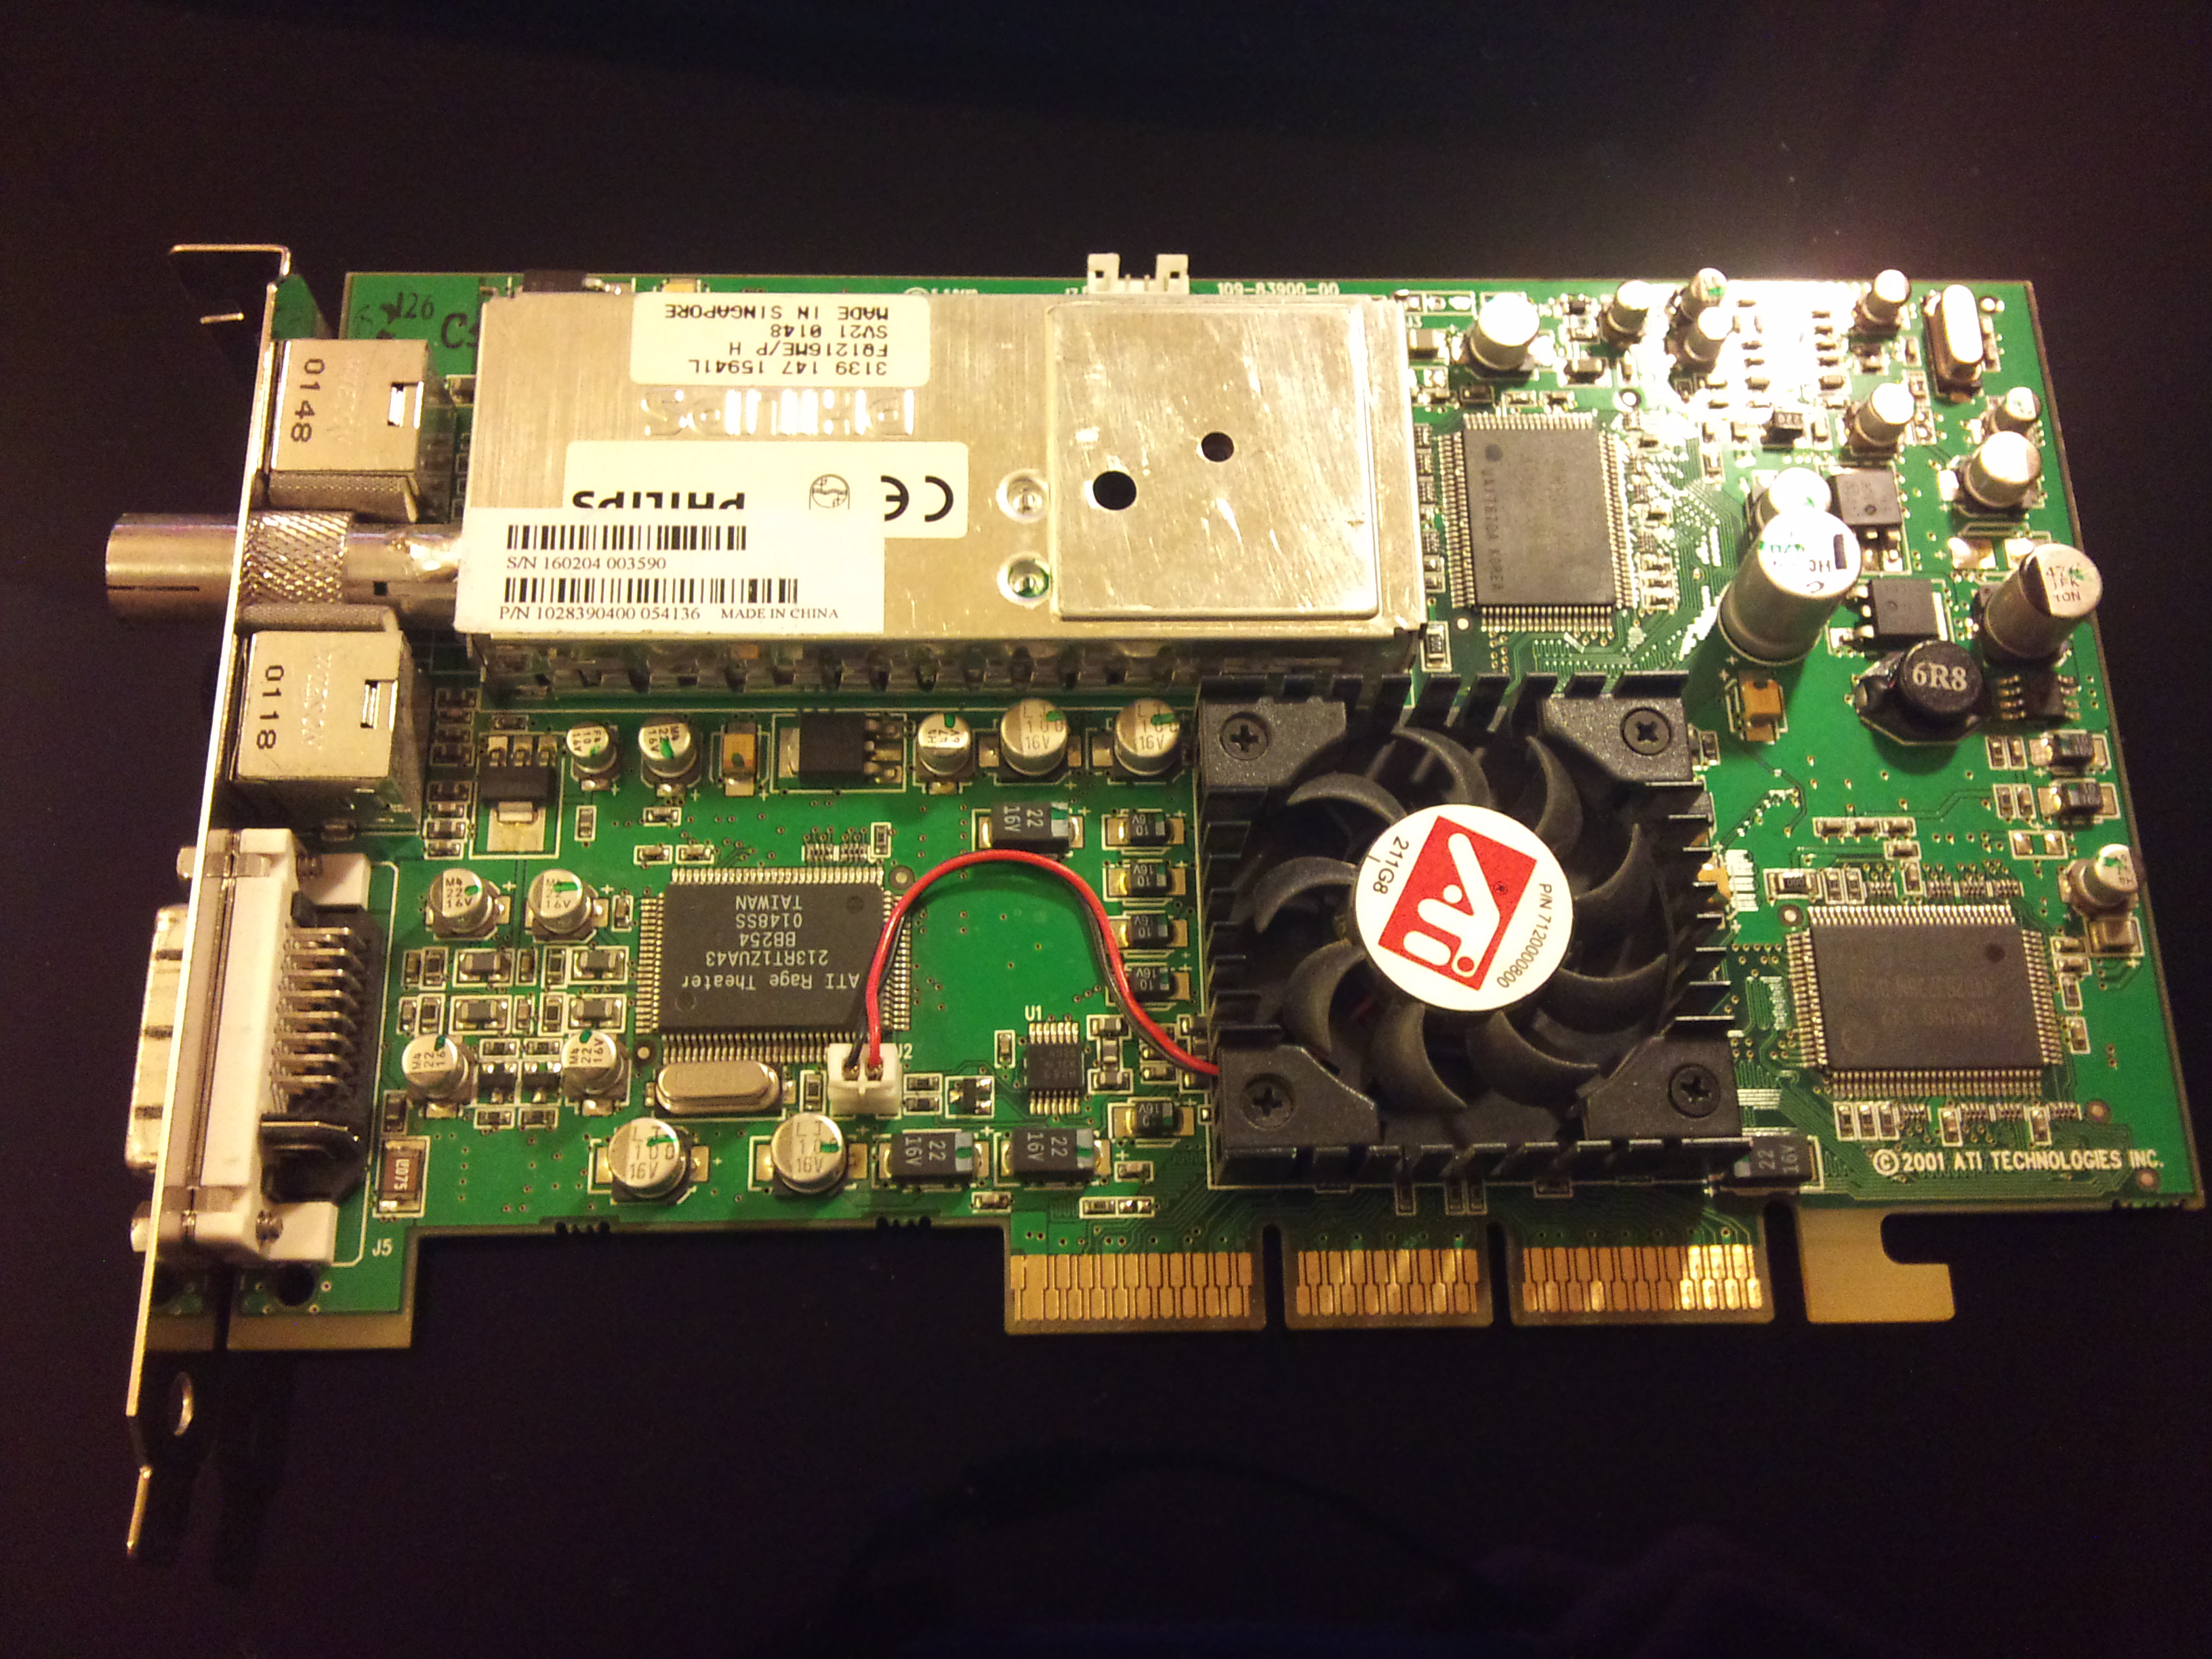 ALL IN WONDER RADEON 7500 DRIVER FOR WINDOWS 8